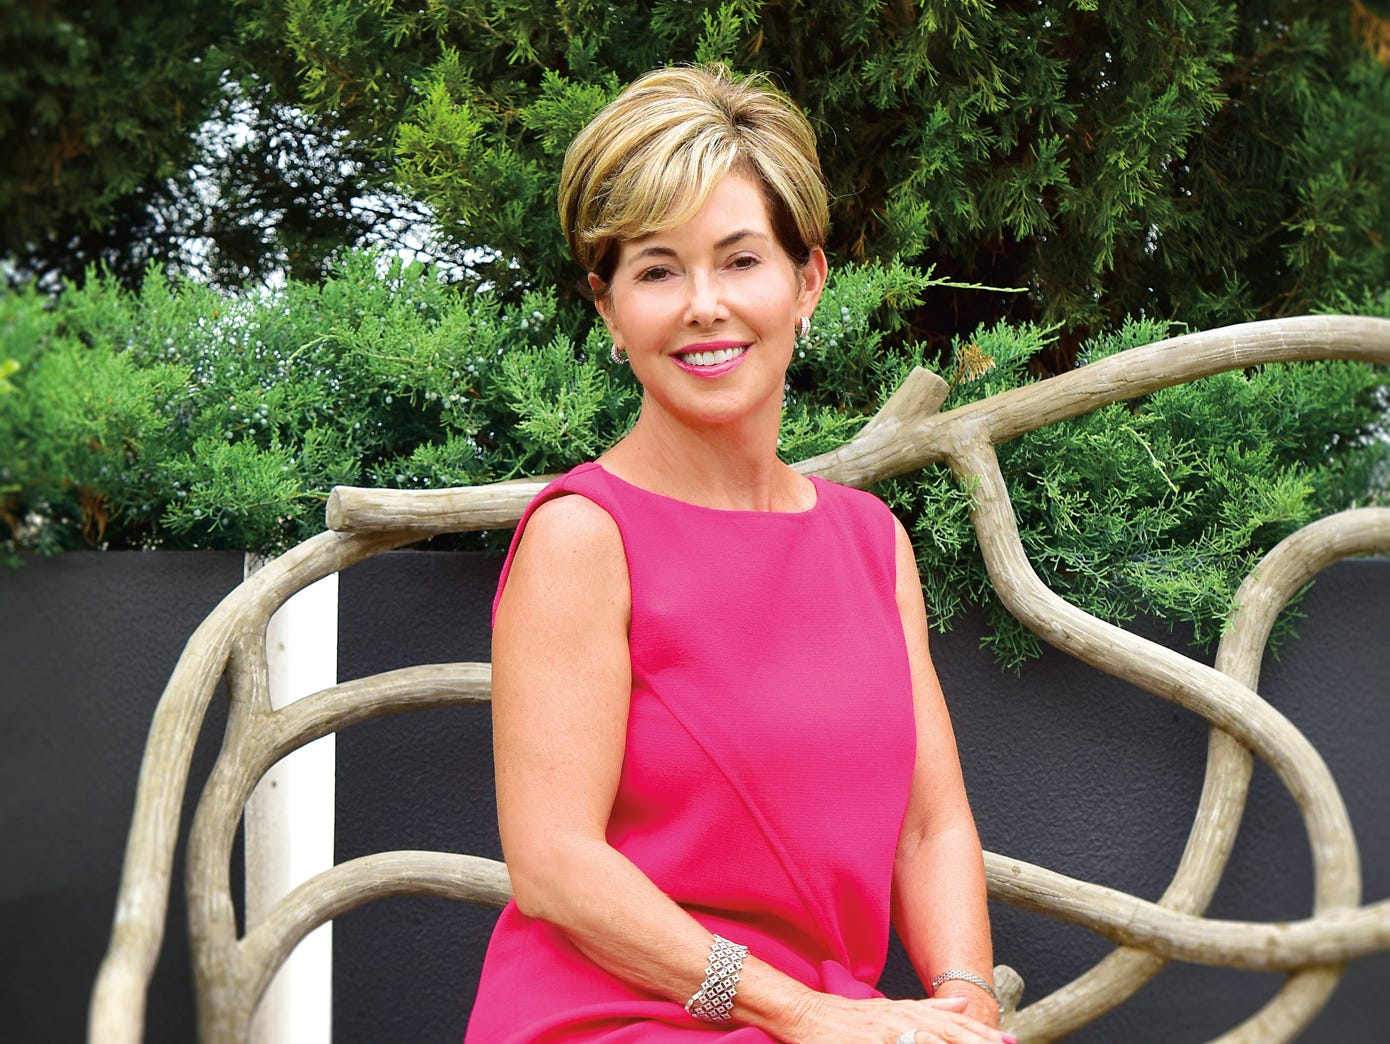 Velda Hughes, owner and CEO of Hughes Agency, was the 15 Minutes With feature for the July issue of TALK.